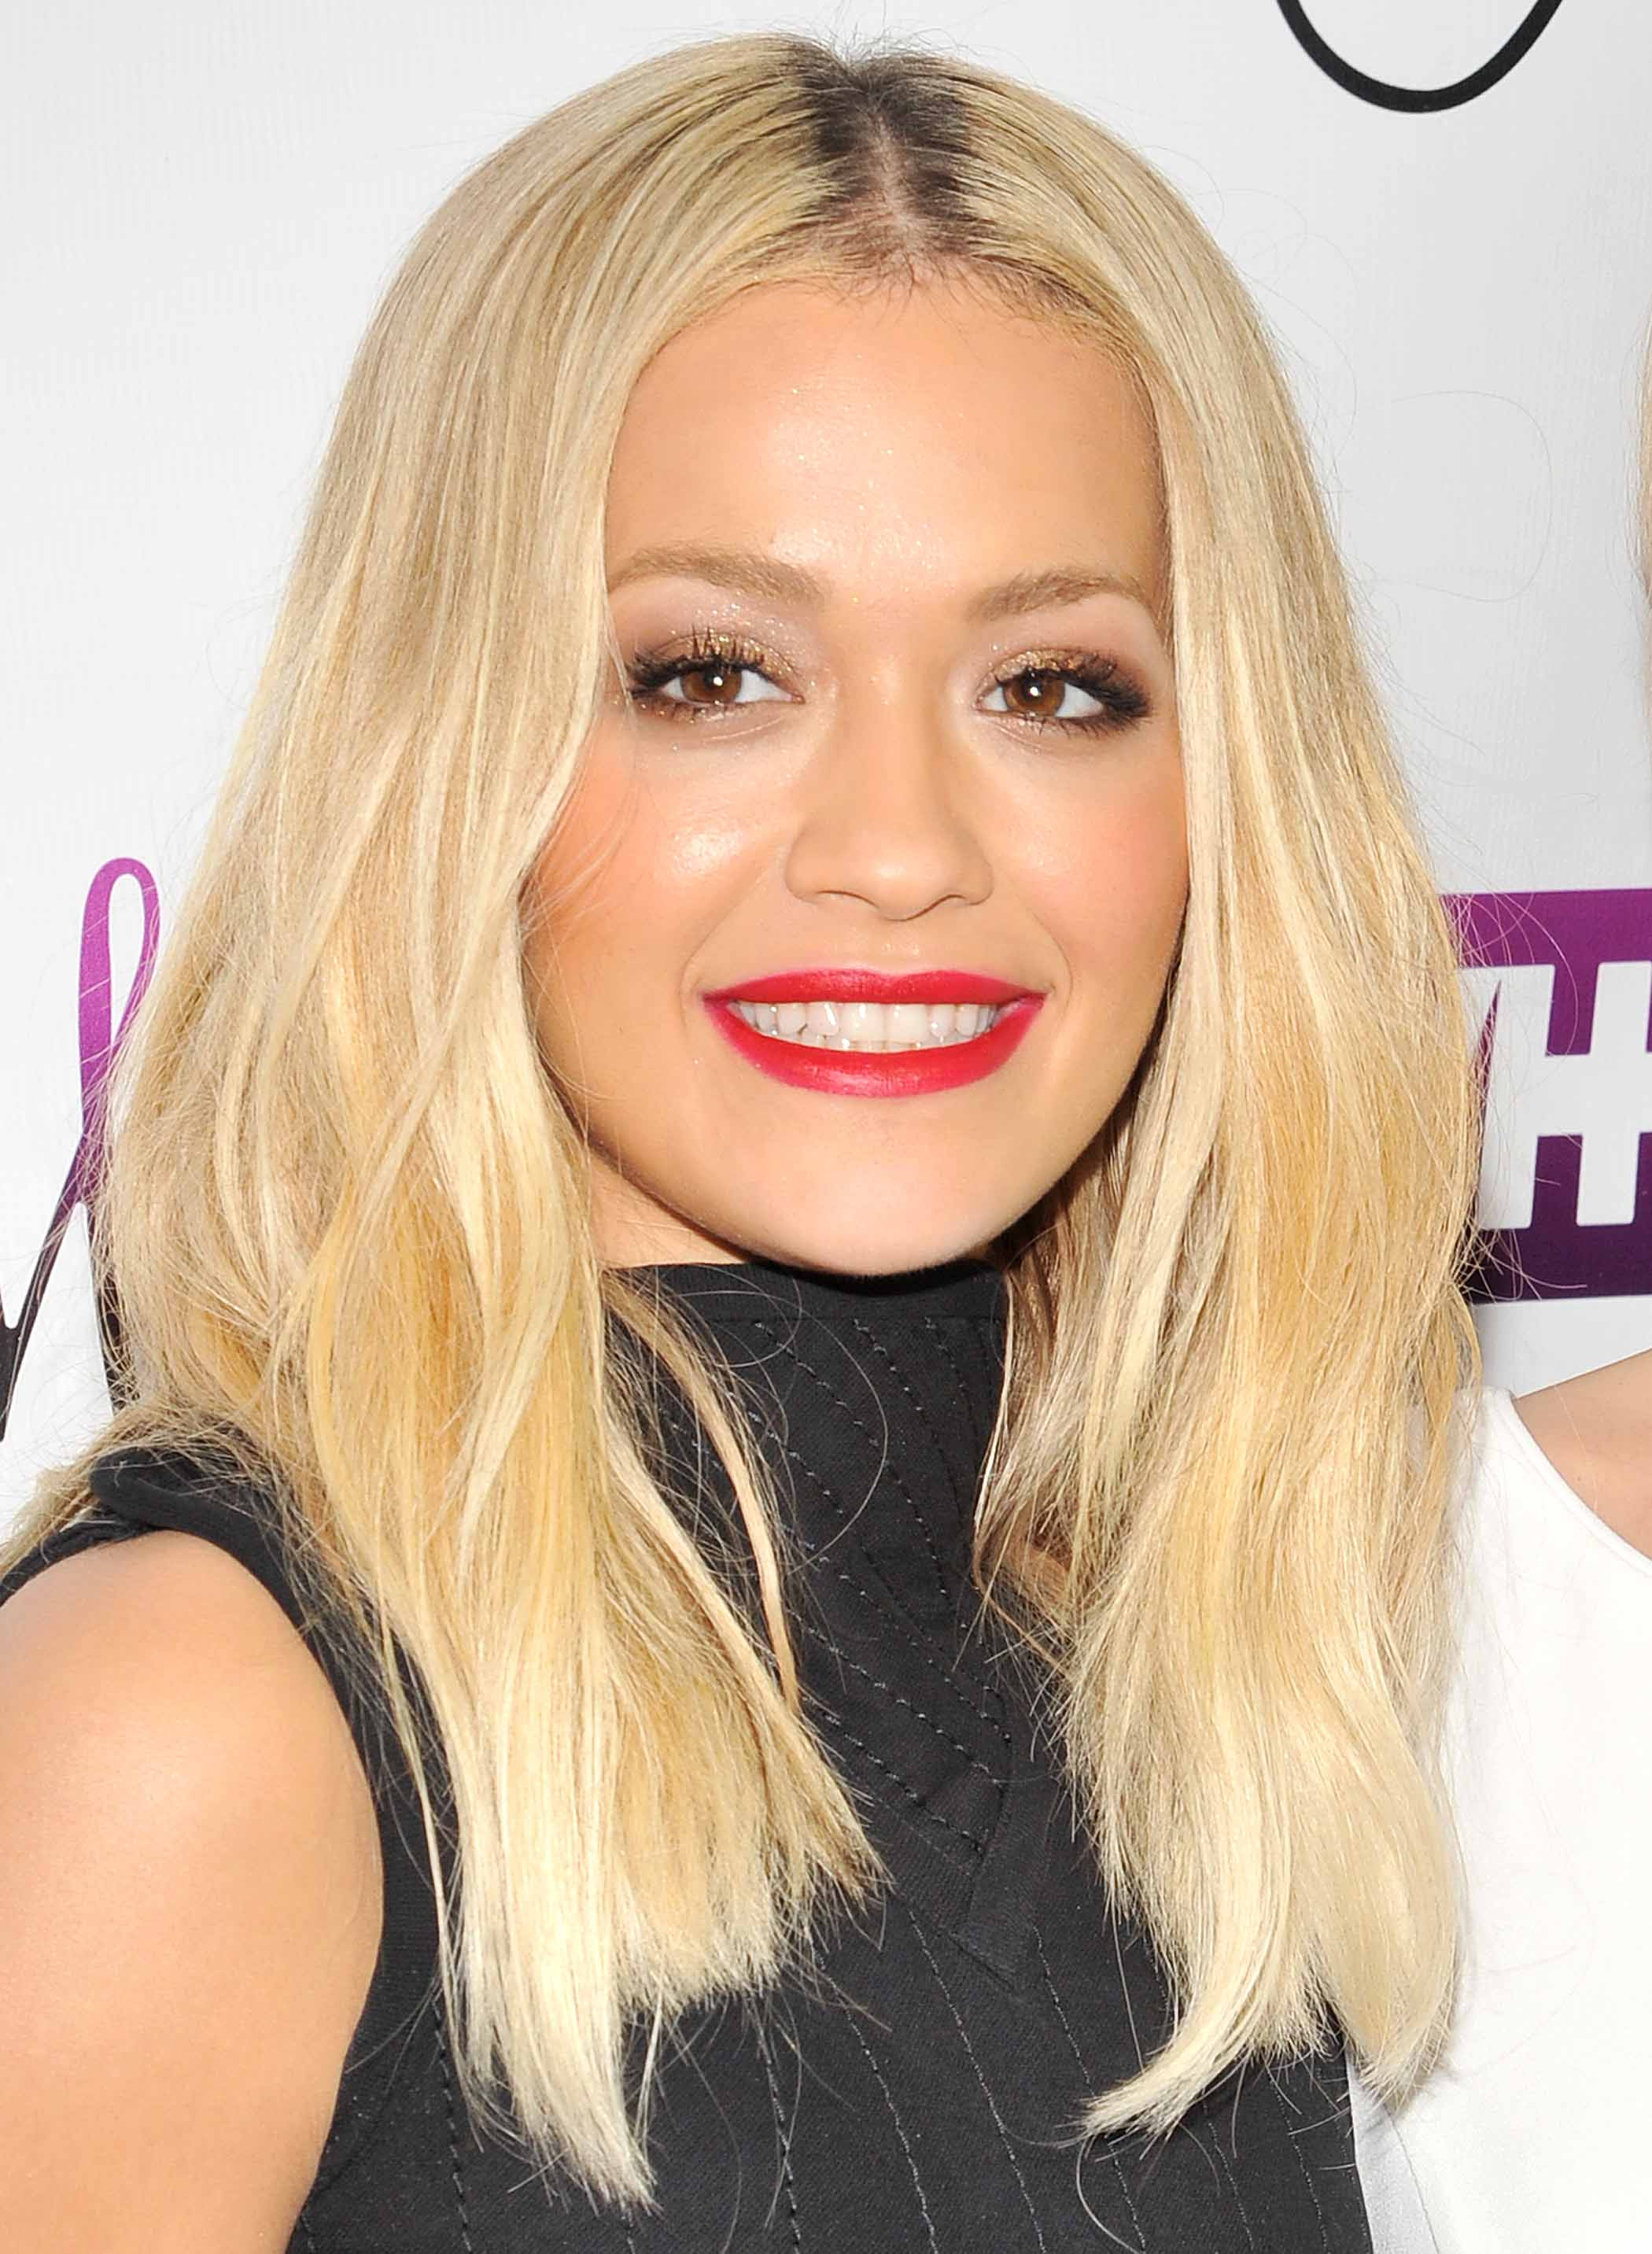 blonde hair with highlights: All Things Hair - IMAGE - Rita Ora long blonde hair